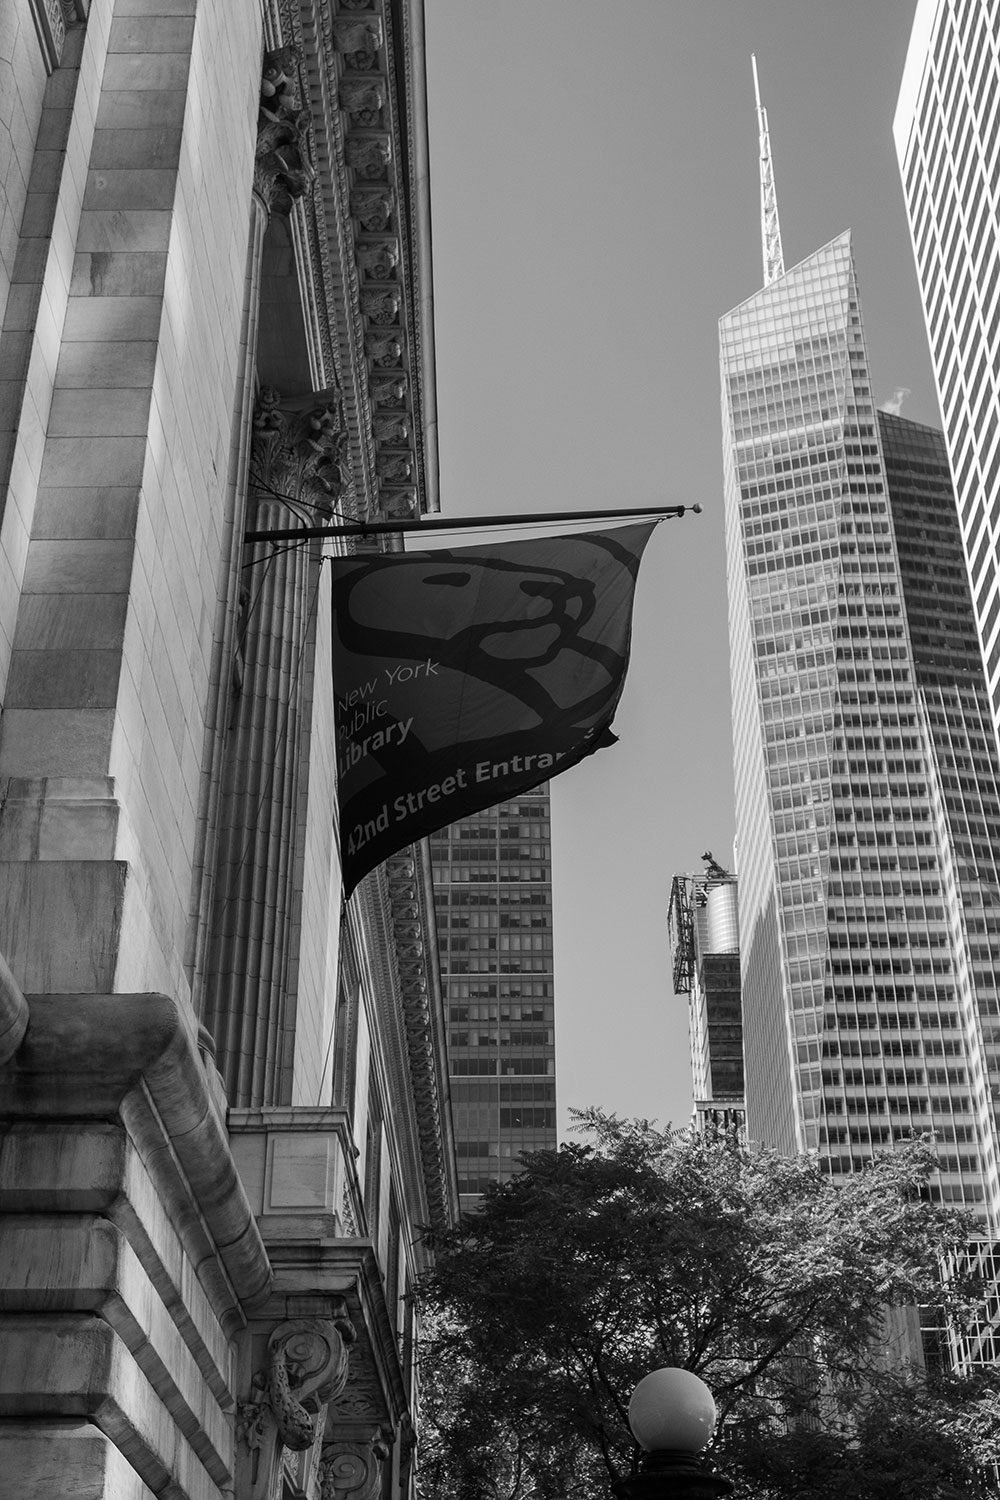 New York Public Library flag